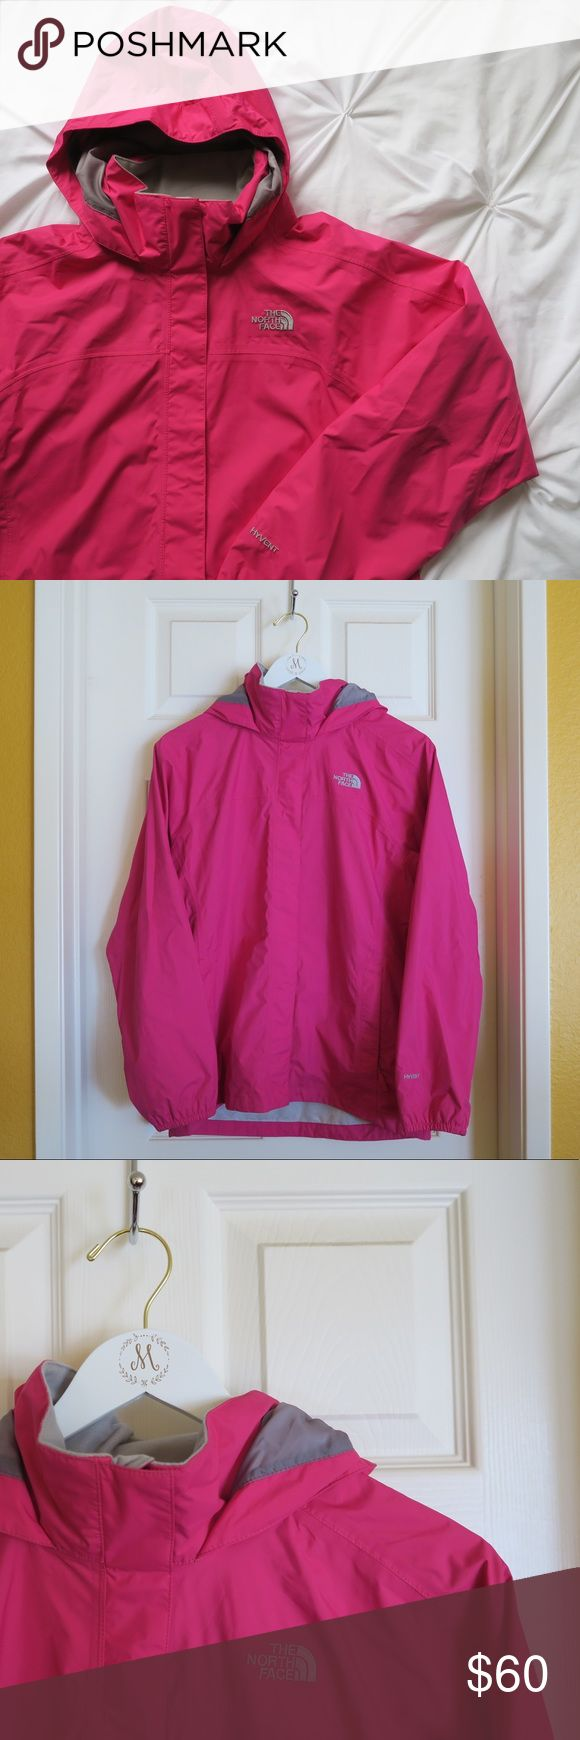 Girls North Face Jacket Girls North Face Jacket. Great condition! I wear a size small in women's and this girls XL jacket fits perfect.   Waterproof, breathable, fully seam sealed Mesh-lined body Brushed collar lining Hood stows in collar Zip hand pockets Center front zip and Velcro® closure Elasticized cuffs Chin guard flap North Face Jackets & Coats Raincoats